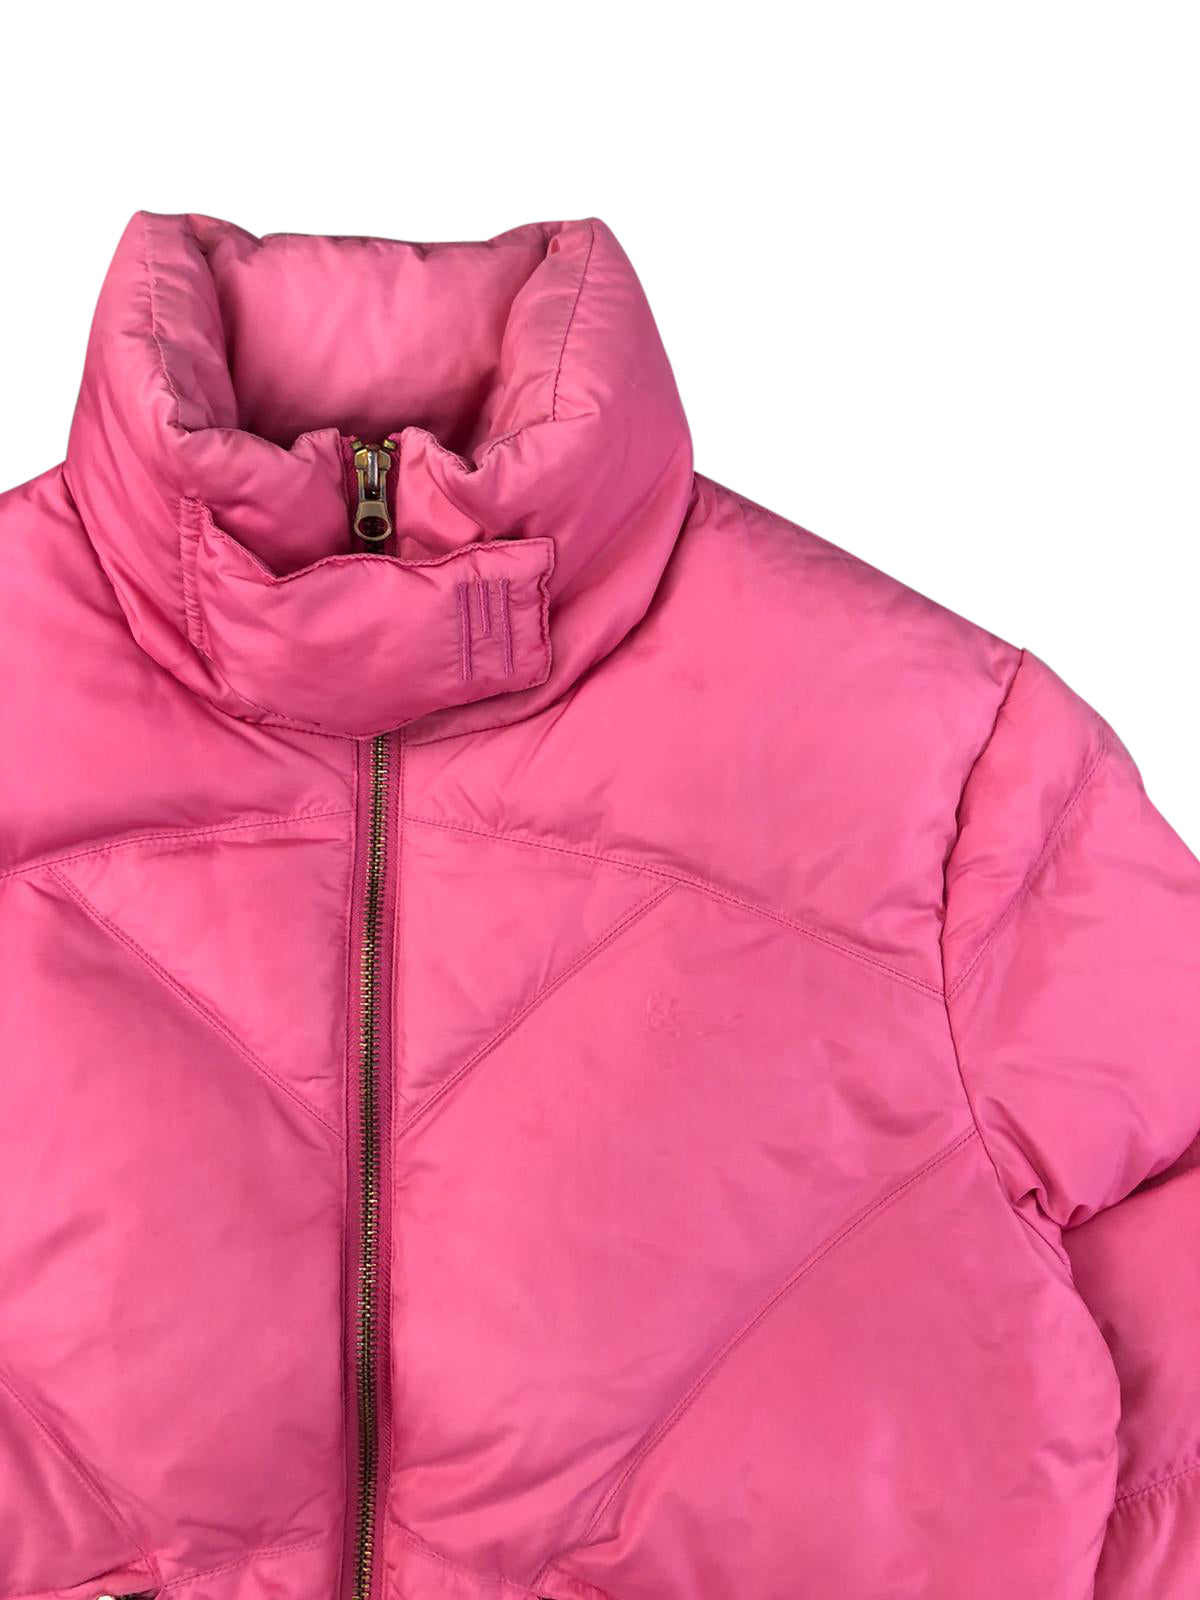 Missoni Puffer Jacket (Pink) UK 10-12